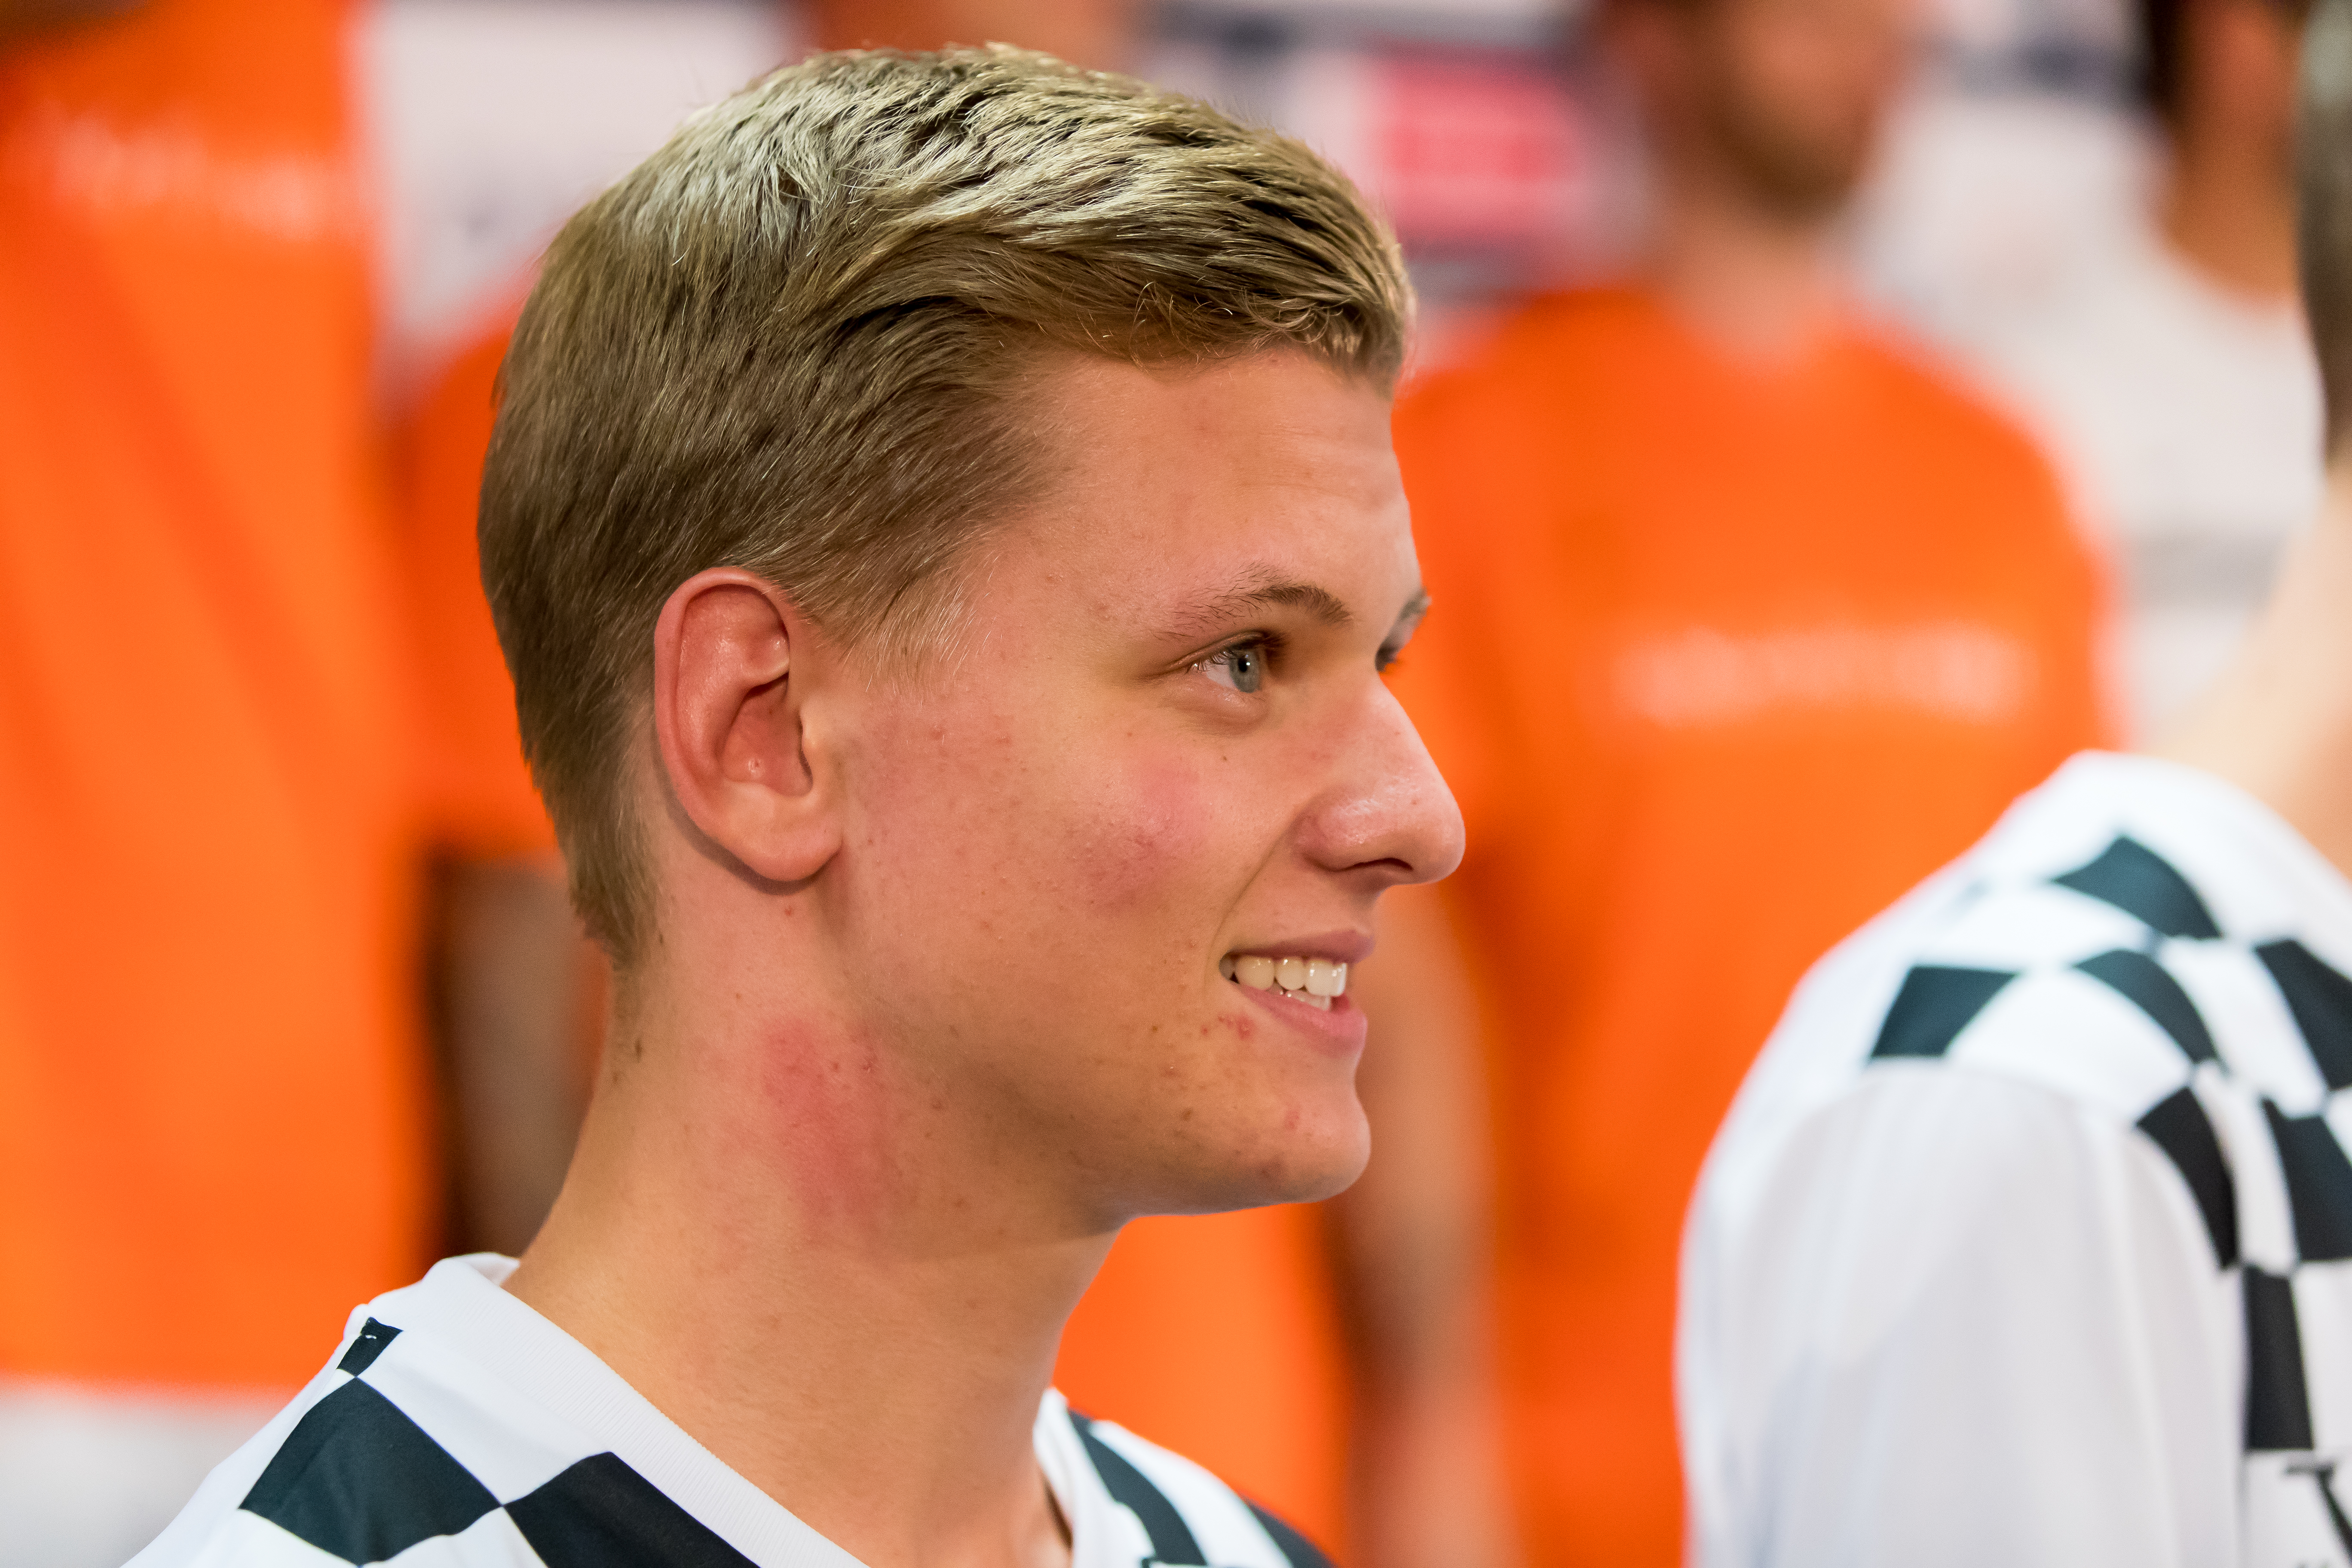 The 19-year old son of father Michael Schumacher and mother Corinna Schumacher Mick Schumacher in 2018 photo. Mick Schumacher earned a  million dollar salary - leaving the net worth at 1 million in 2018